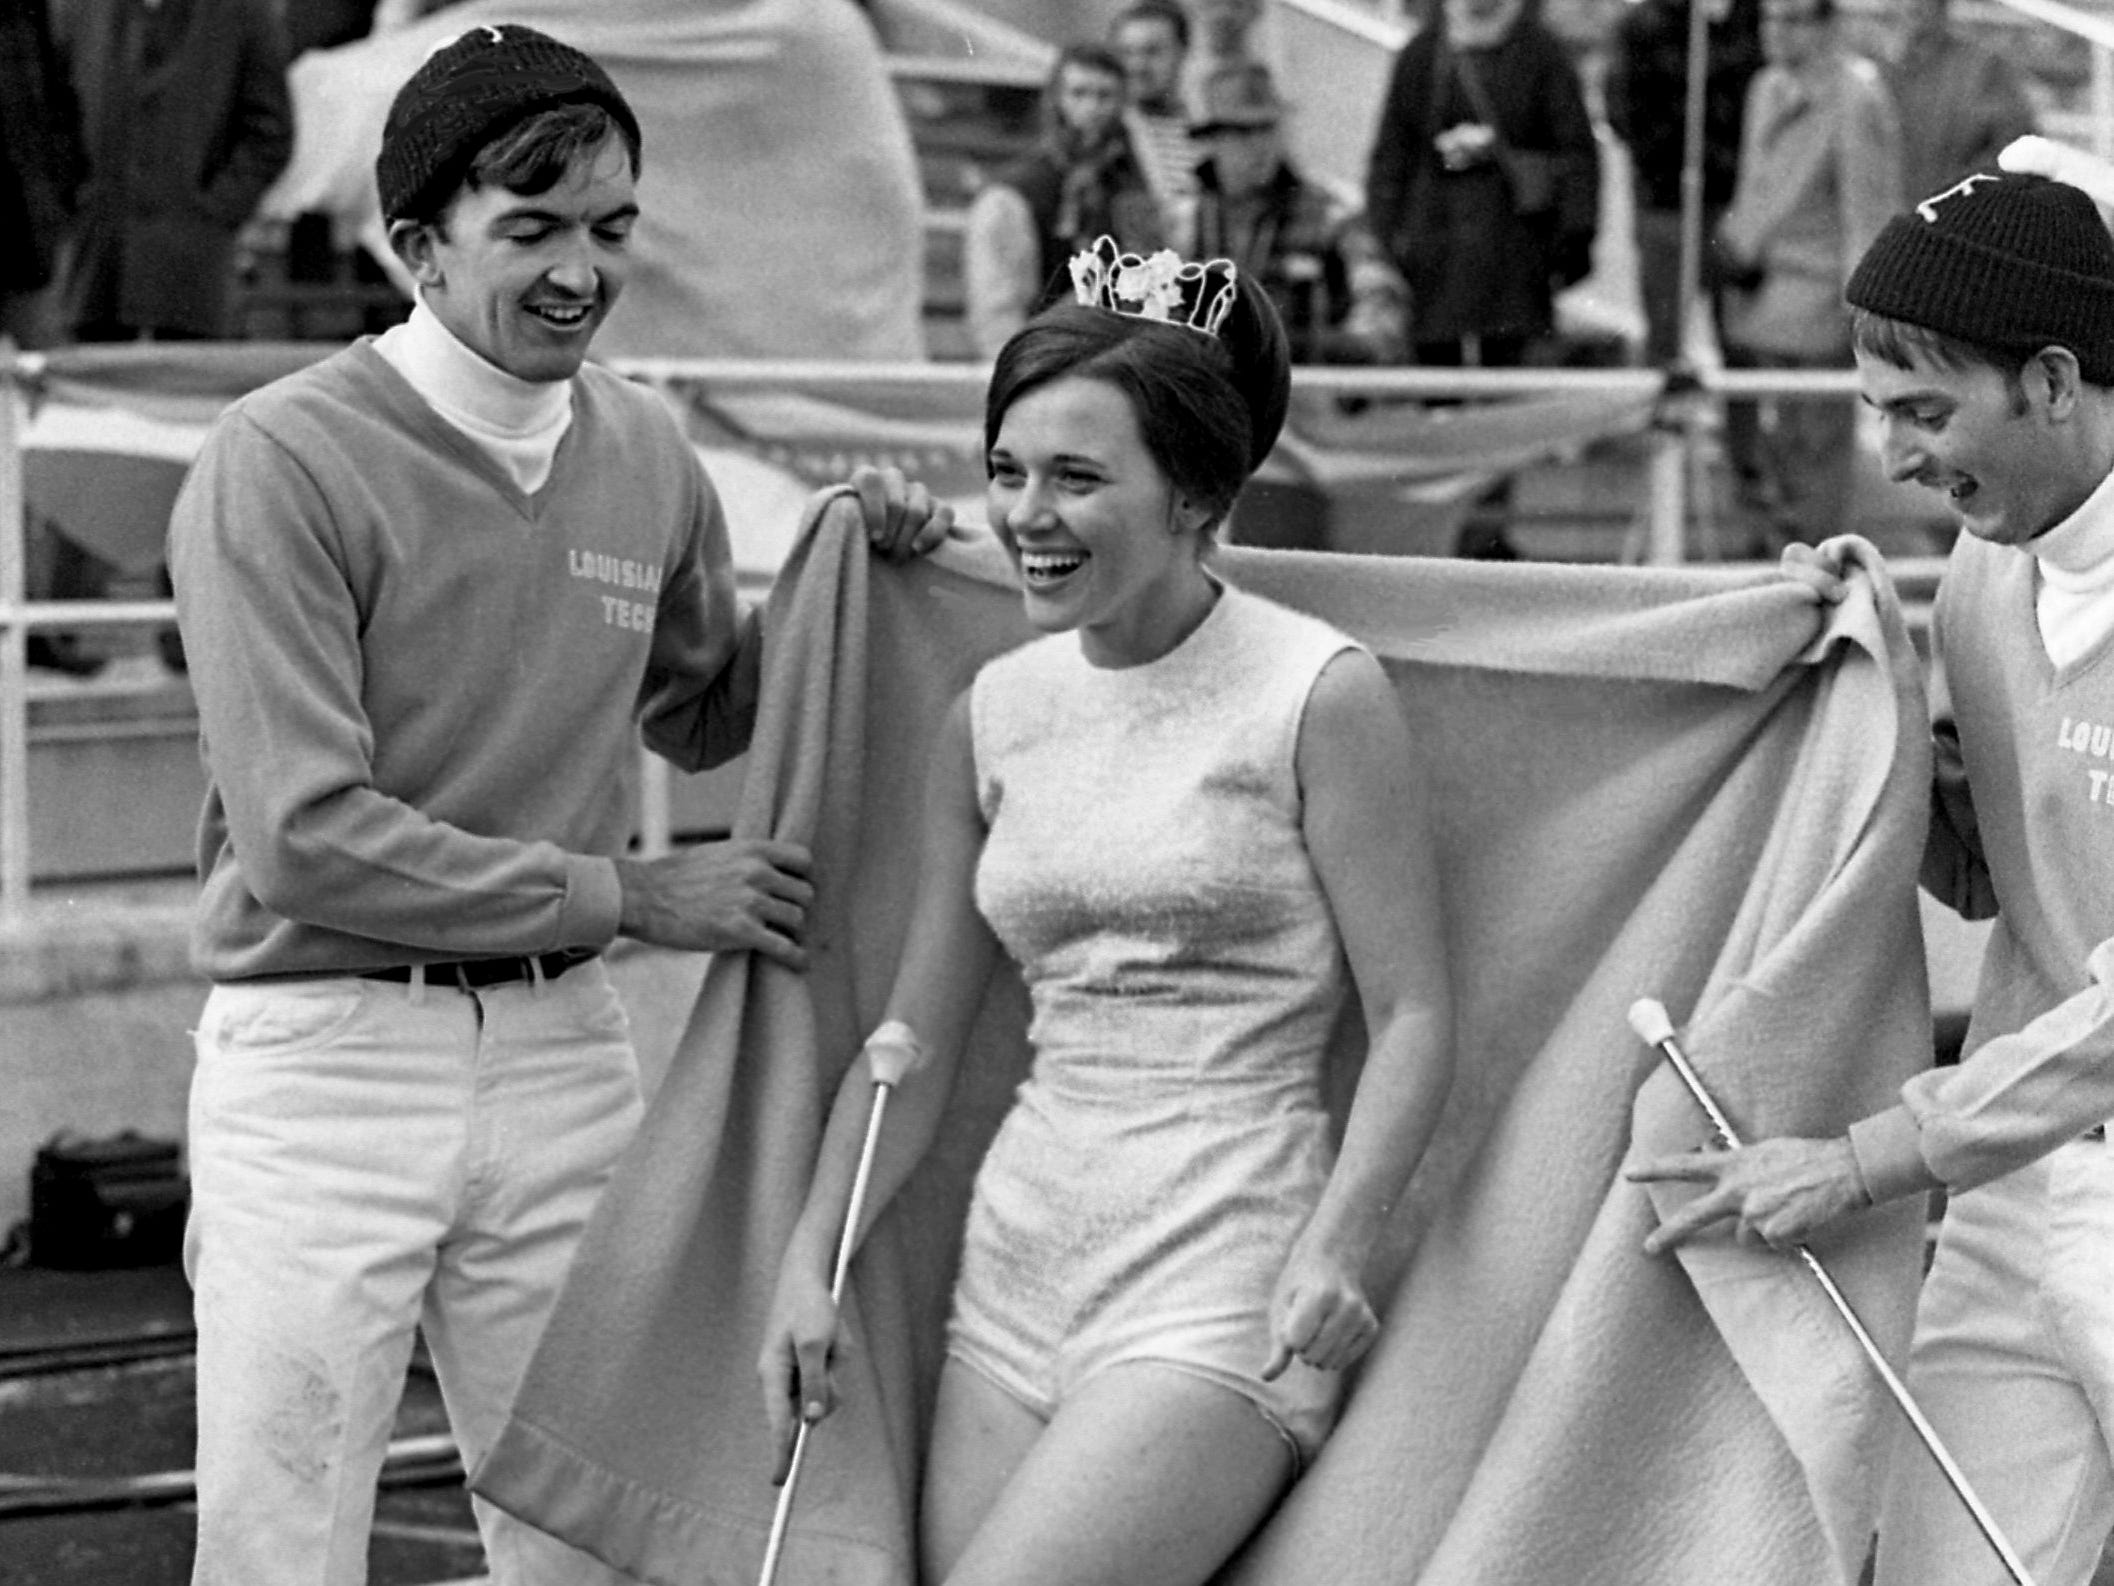 Louisiana Tech majorette Cenelle Callais, center, comes out from under her blanket with help from cheerleaders Tommy Davis and Ernest Wadlington for the halftime show during the fifth annual Grantland Rice Bowl at Middle Tennessee State University on Dec. 14, 1968.